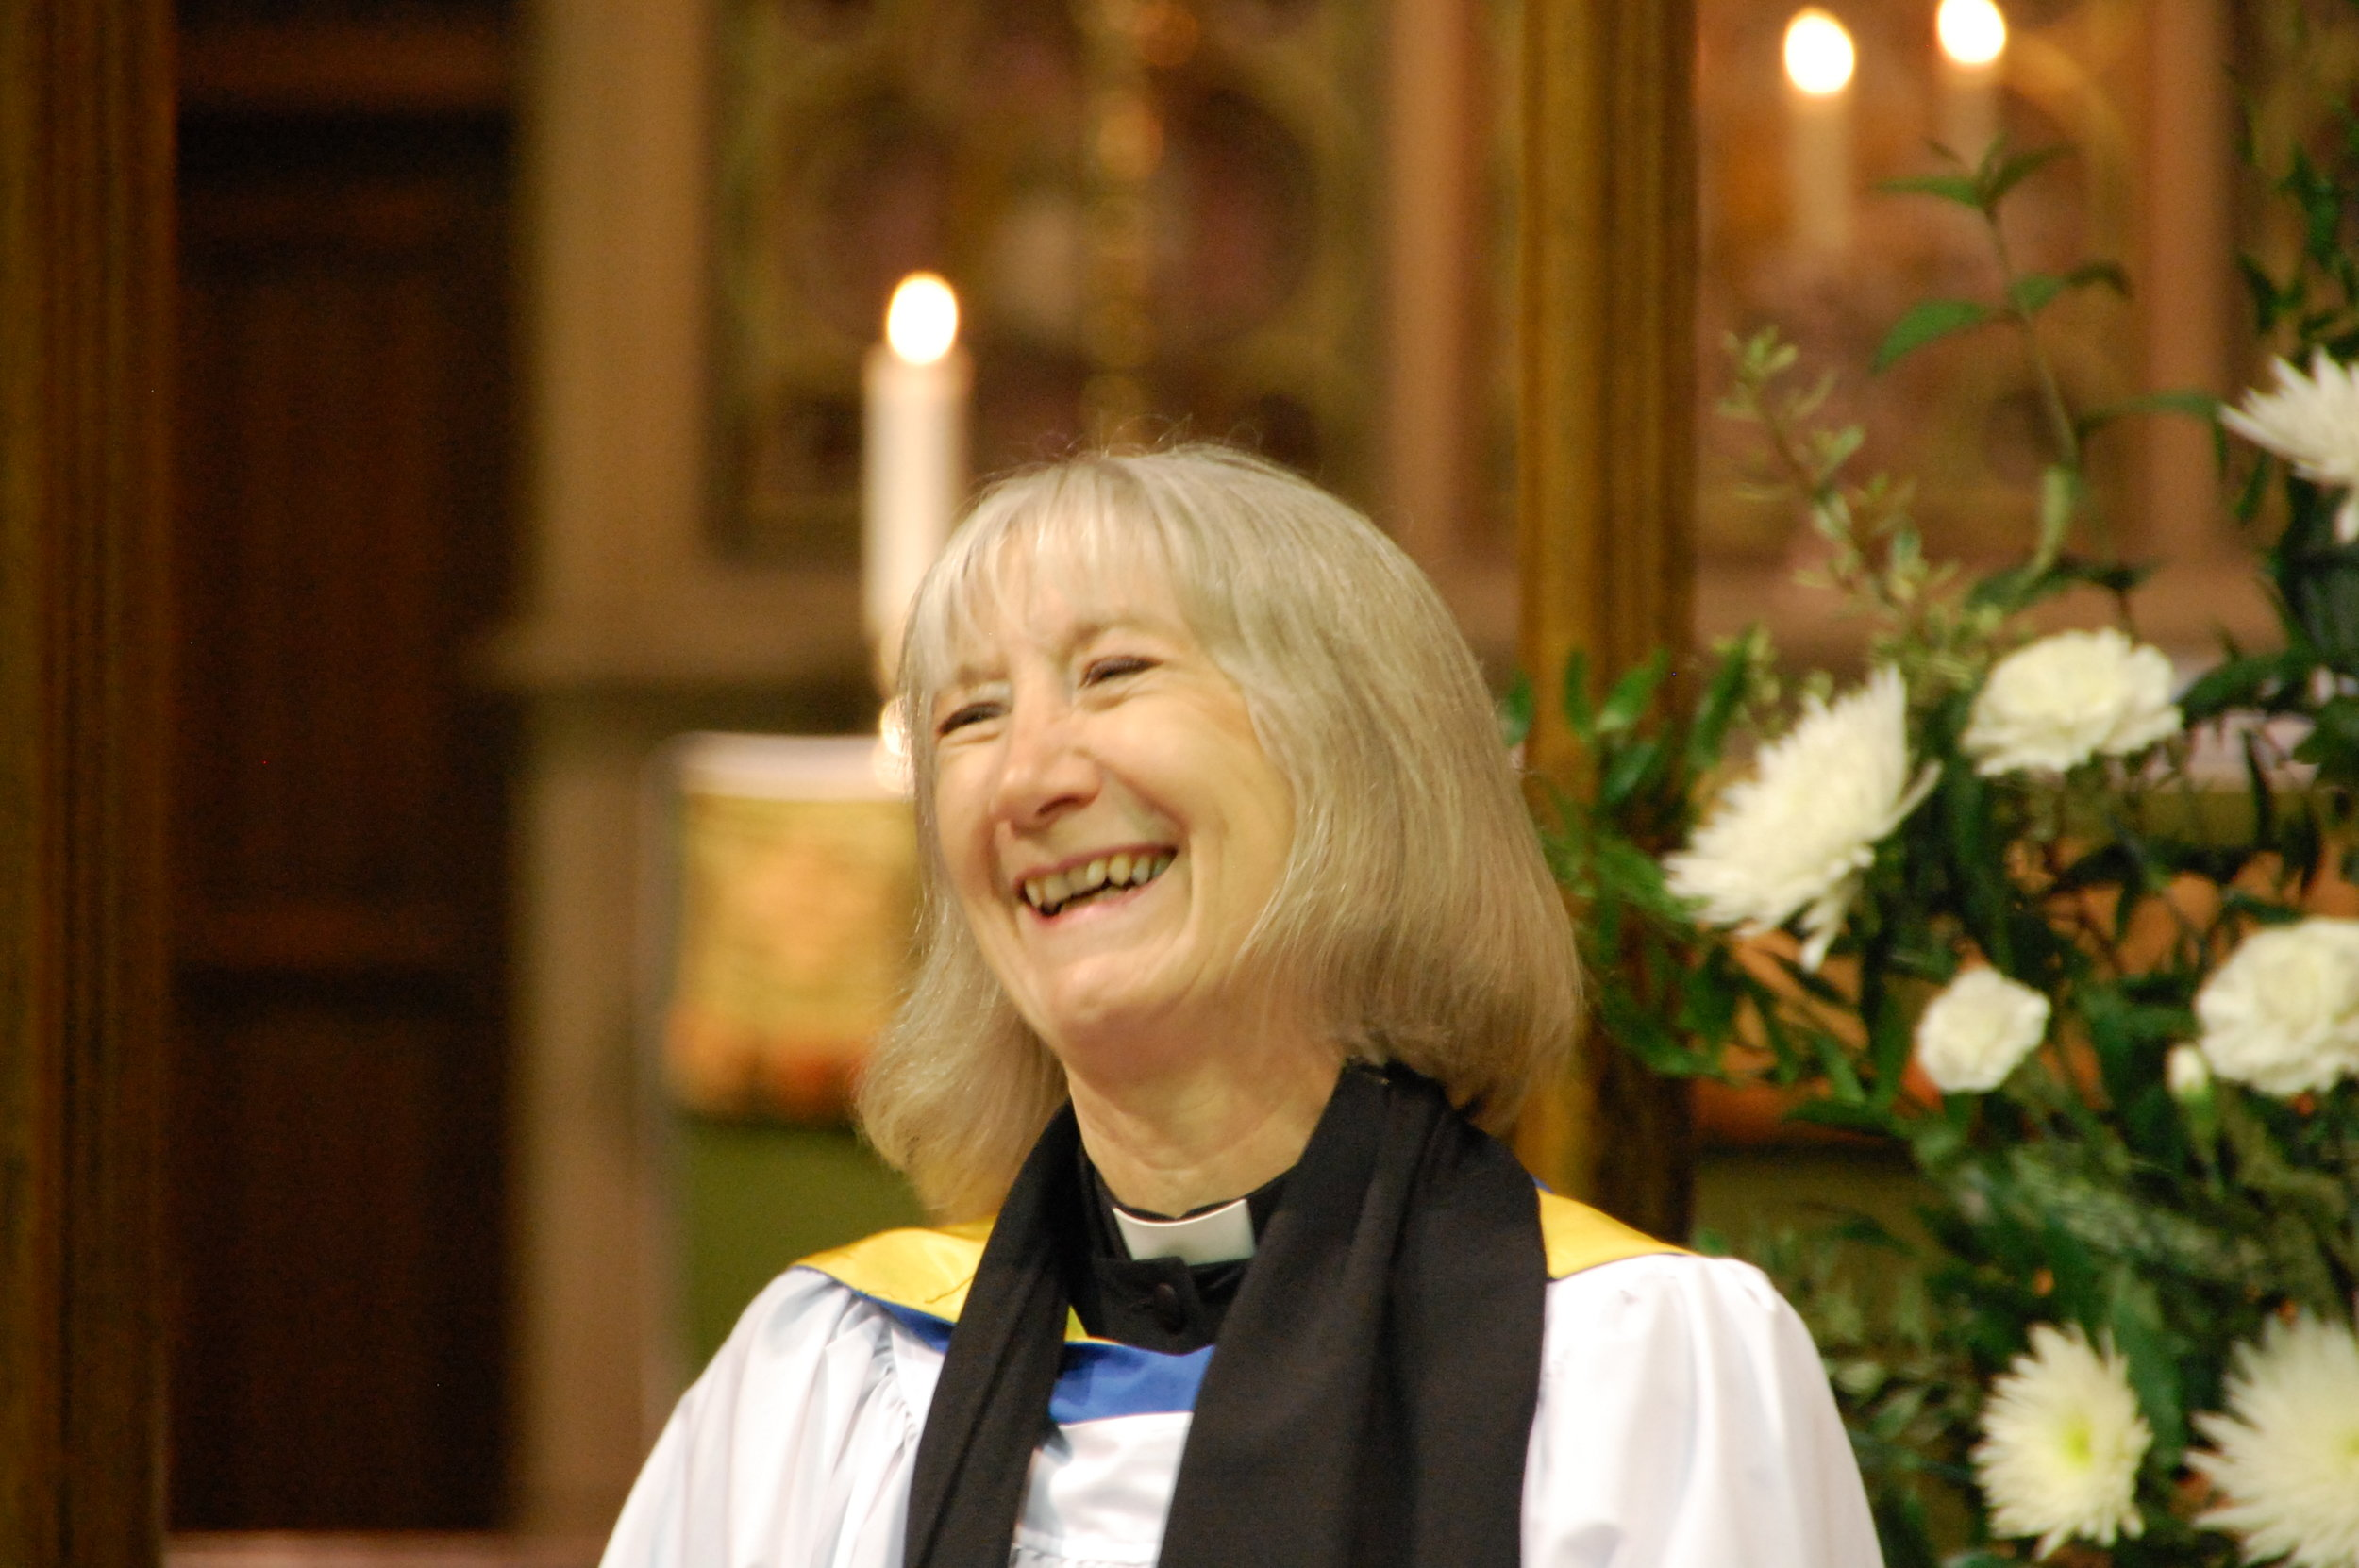 The Rector - Reverend Ann Keating as the Rector is an ordained Church of England priest who is employed to work full-time in the four churches. Having been in post for over four years, Ann thrives on the day to day variety offered in her work.